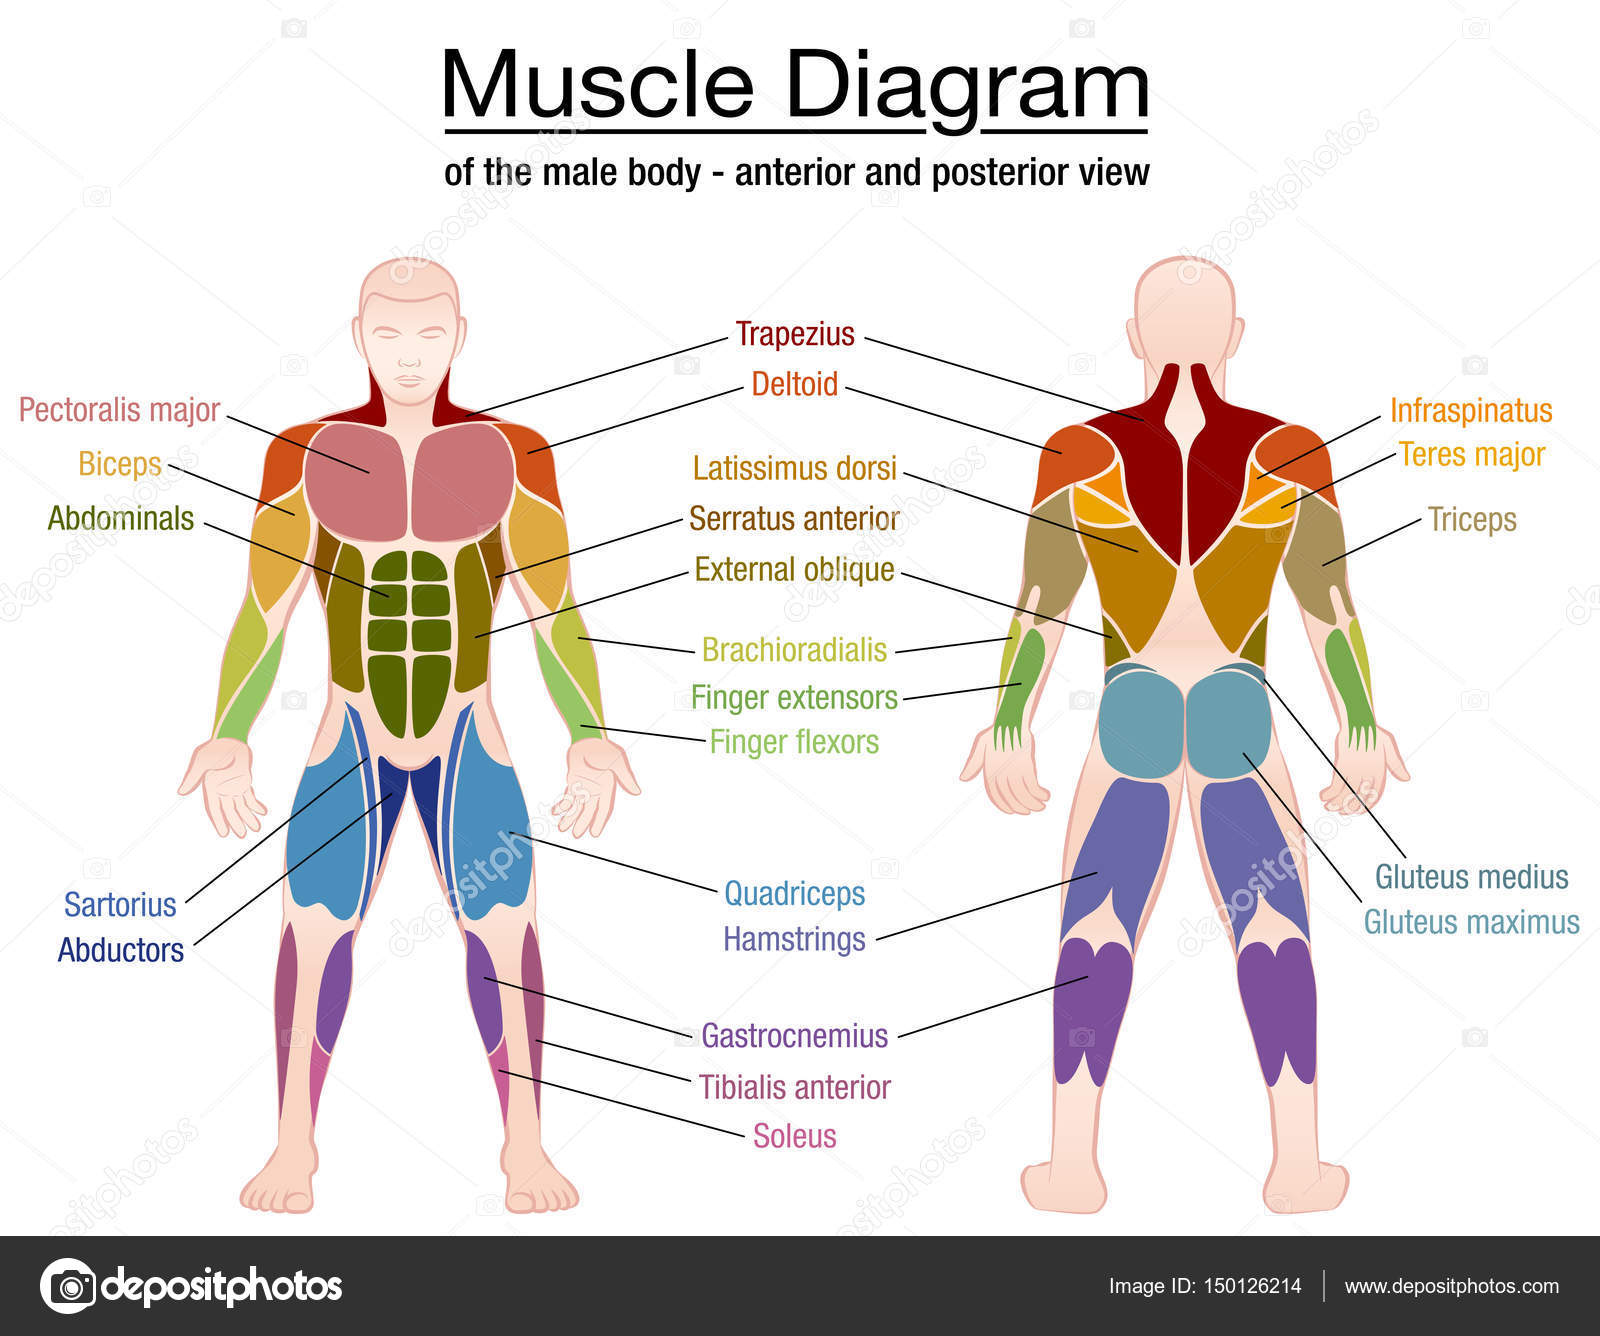 Muscle Diagram Male Body Names